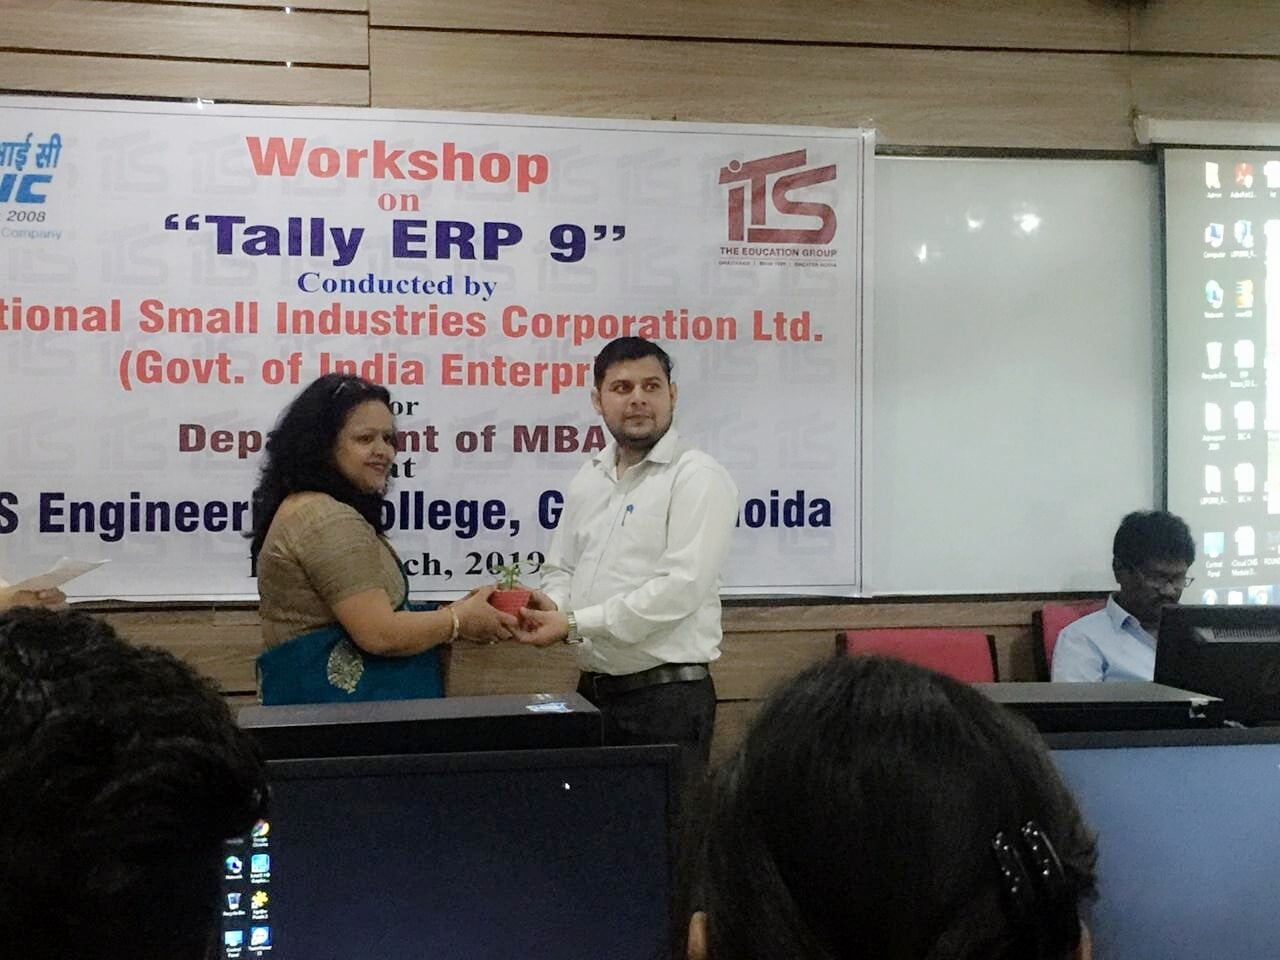 Workshop Conducted on Tally ERP 9.0